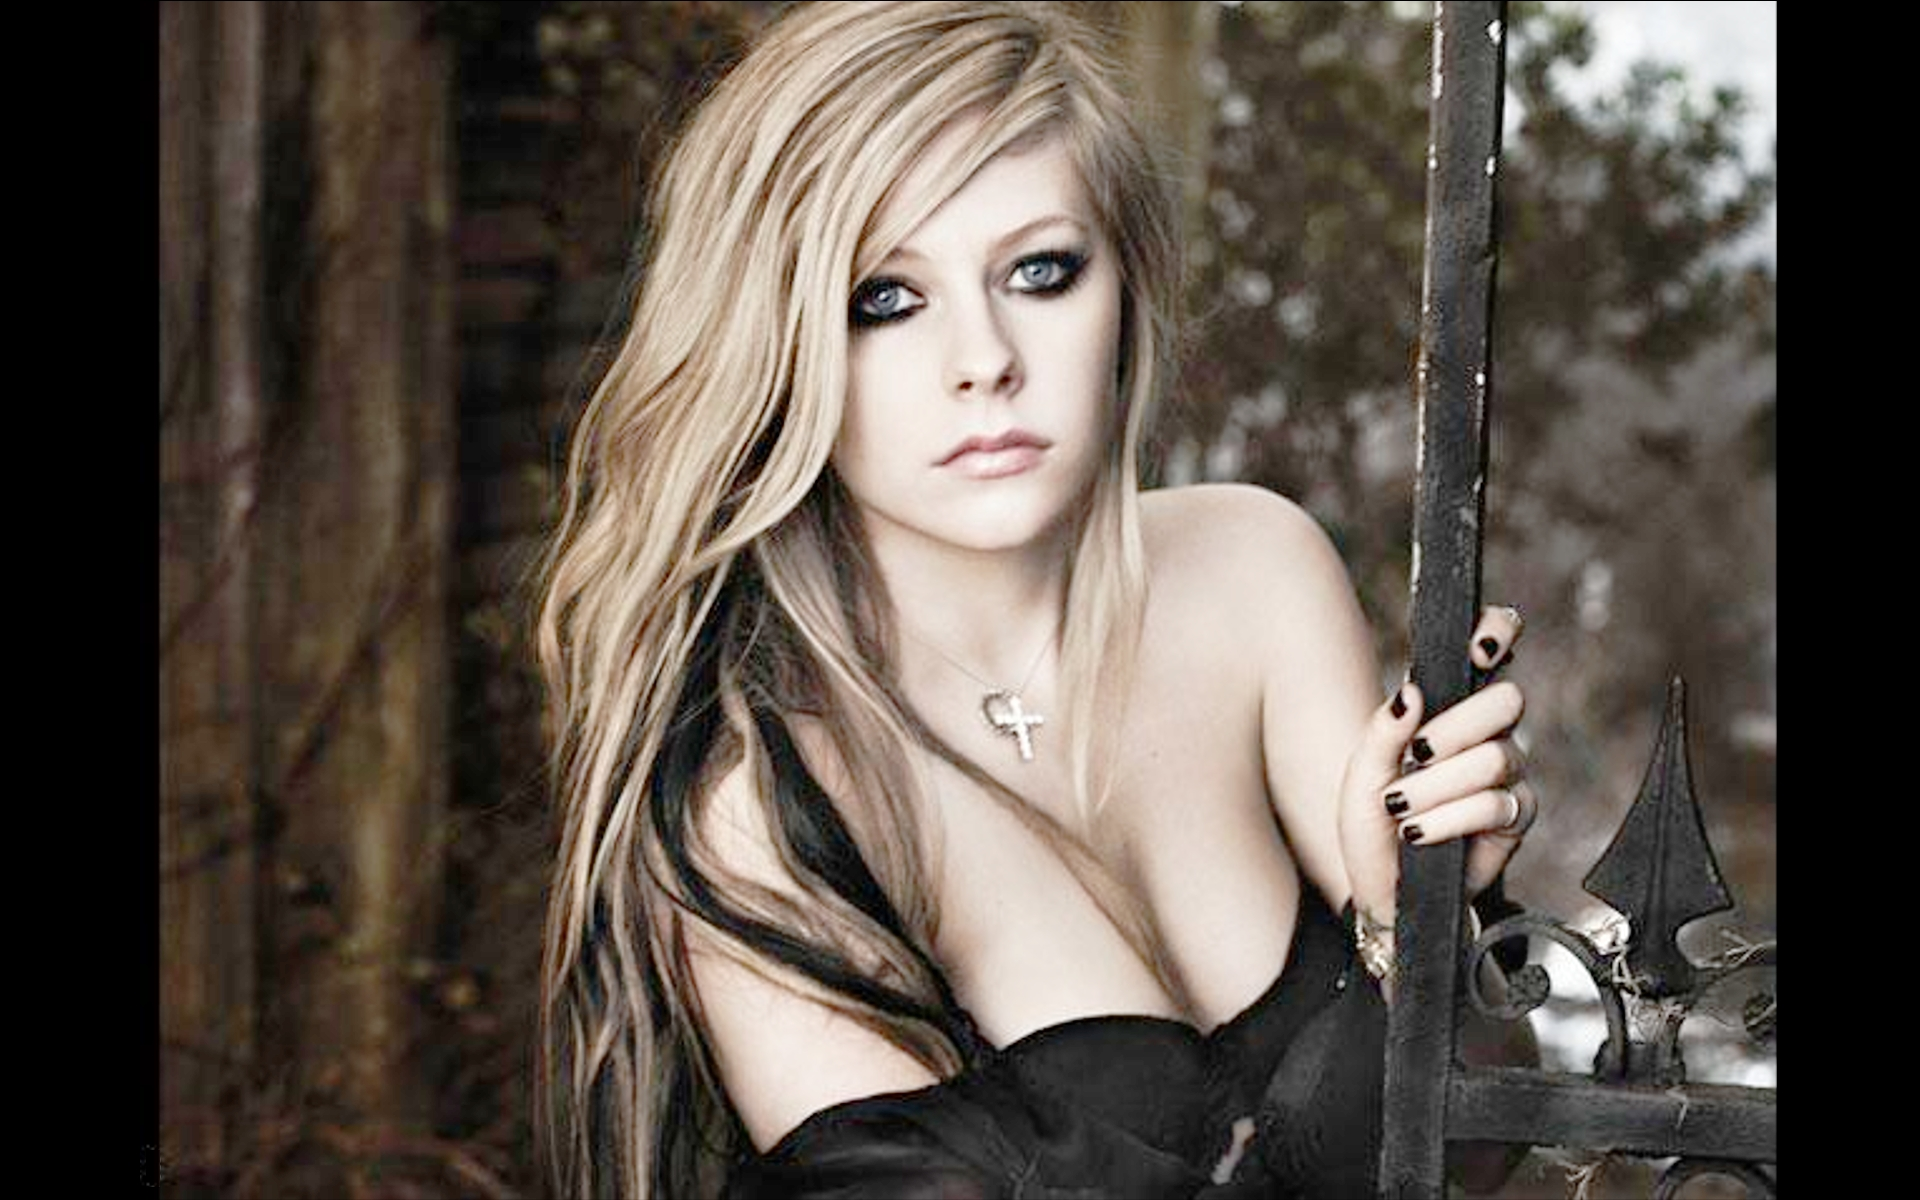 avril lavigne when you're gone скачать